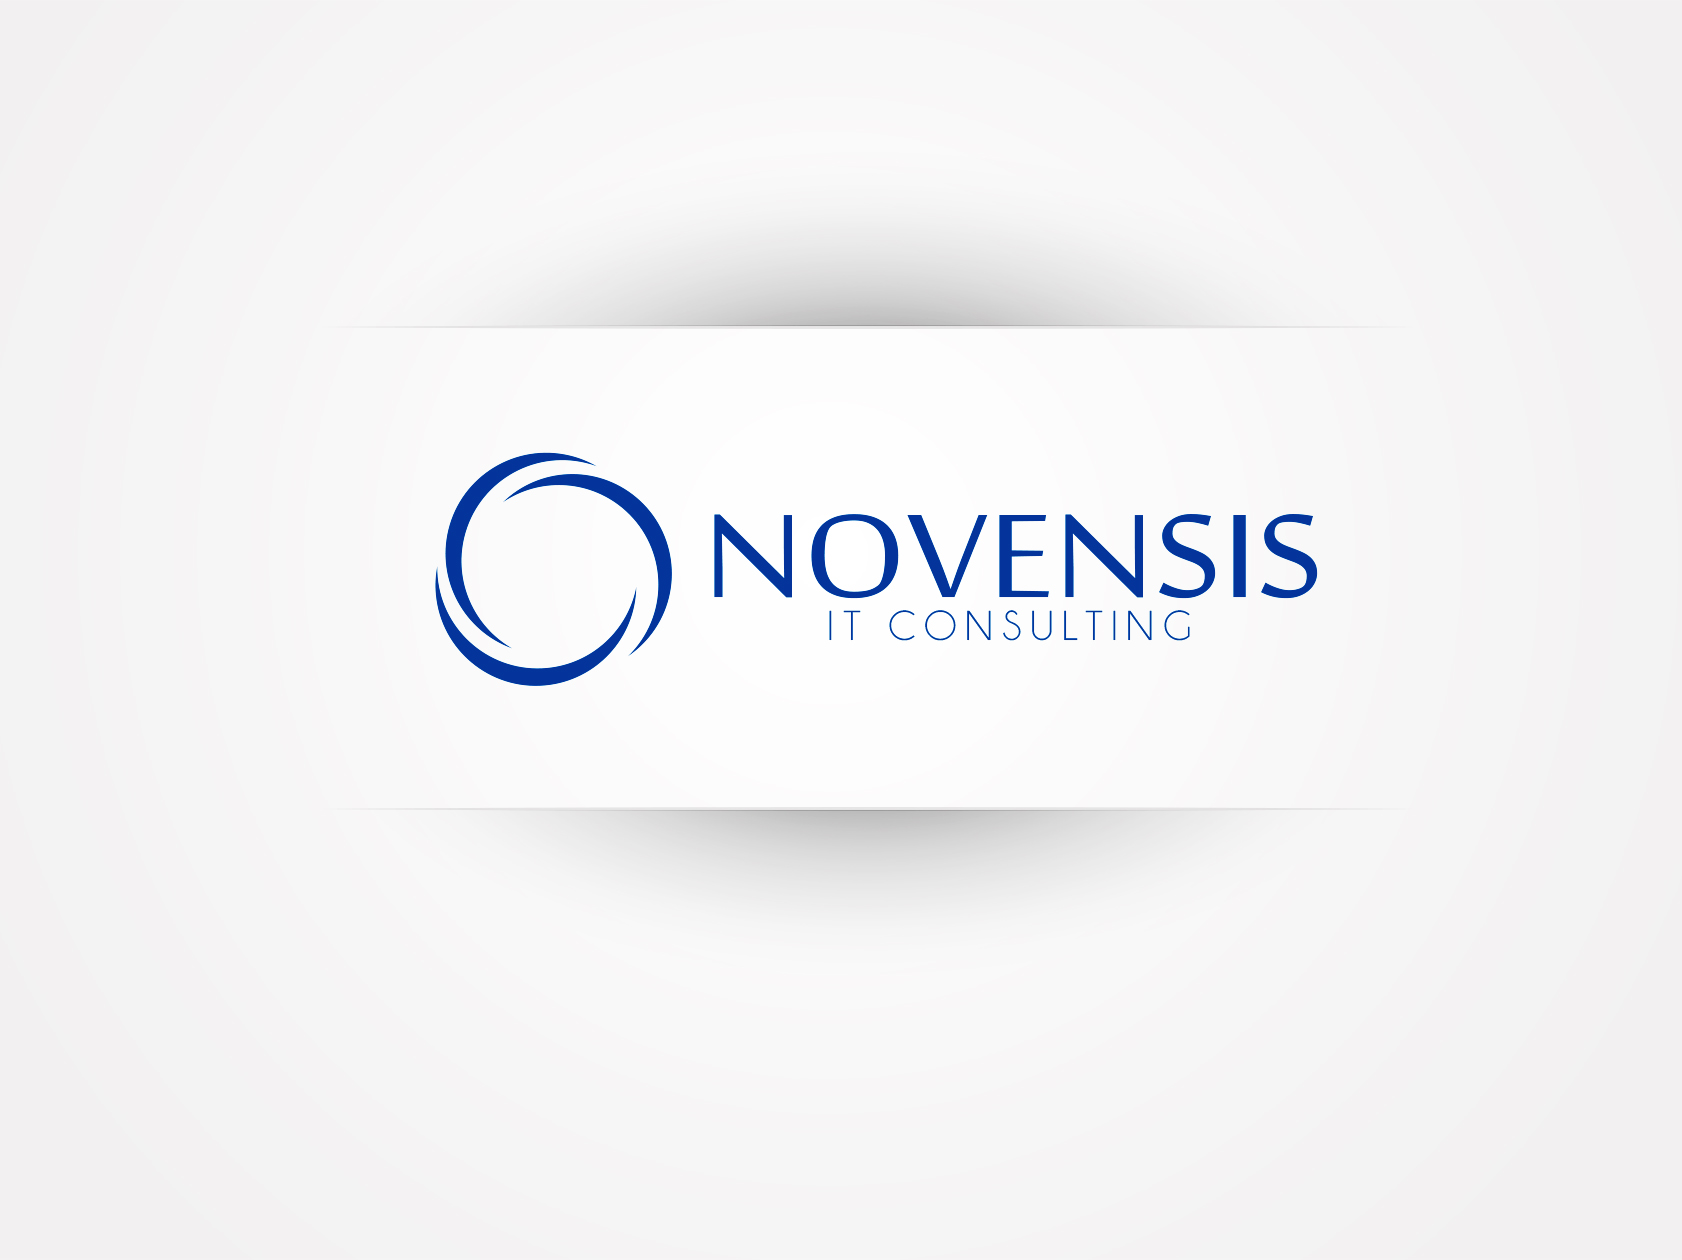 Logo Design by OmegaDesigns - Entry No. 190 in the Logo Design Contest Novensis Logo Design.